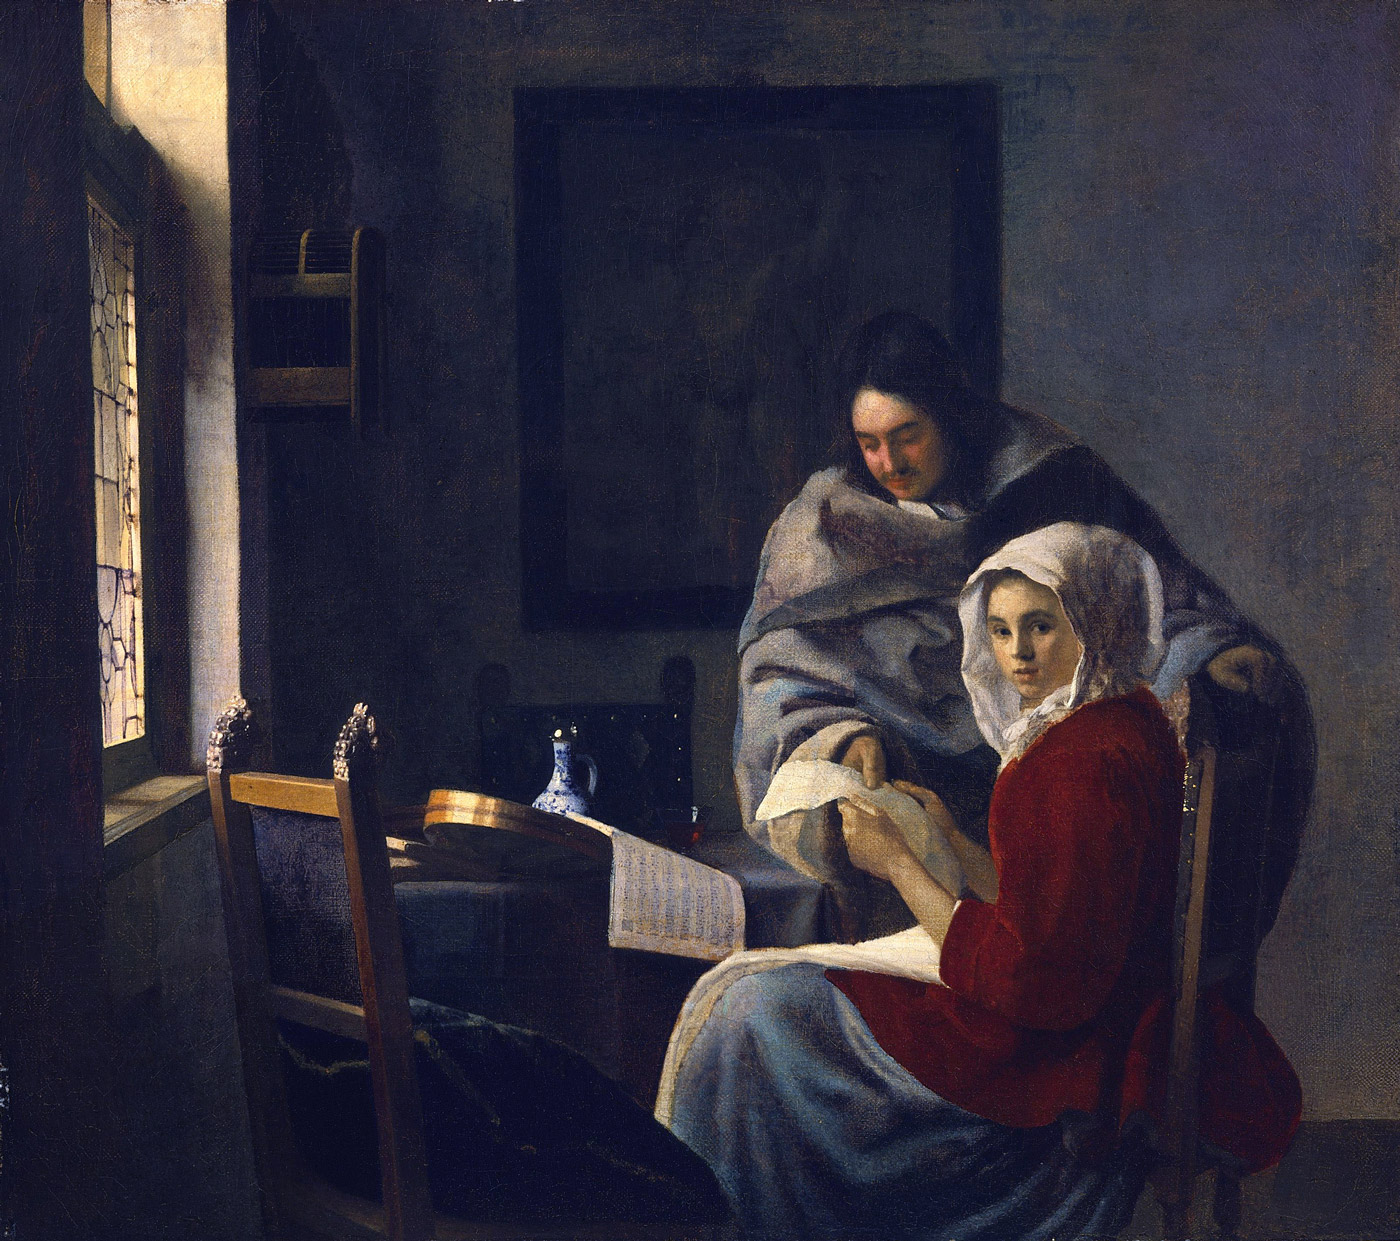 Dutch light as captured by Johannes Vermeer: Girl Interrupted in her Music, (1660 - 1661)